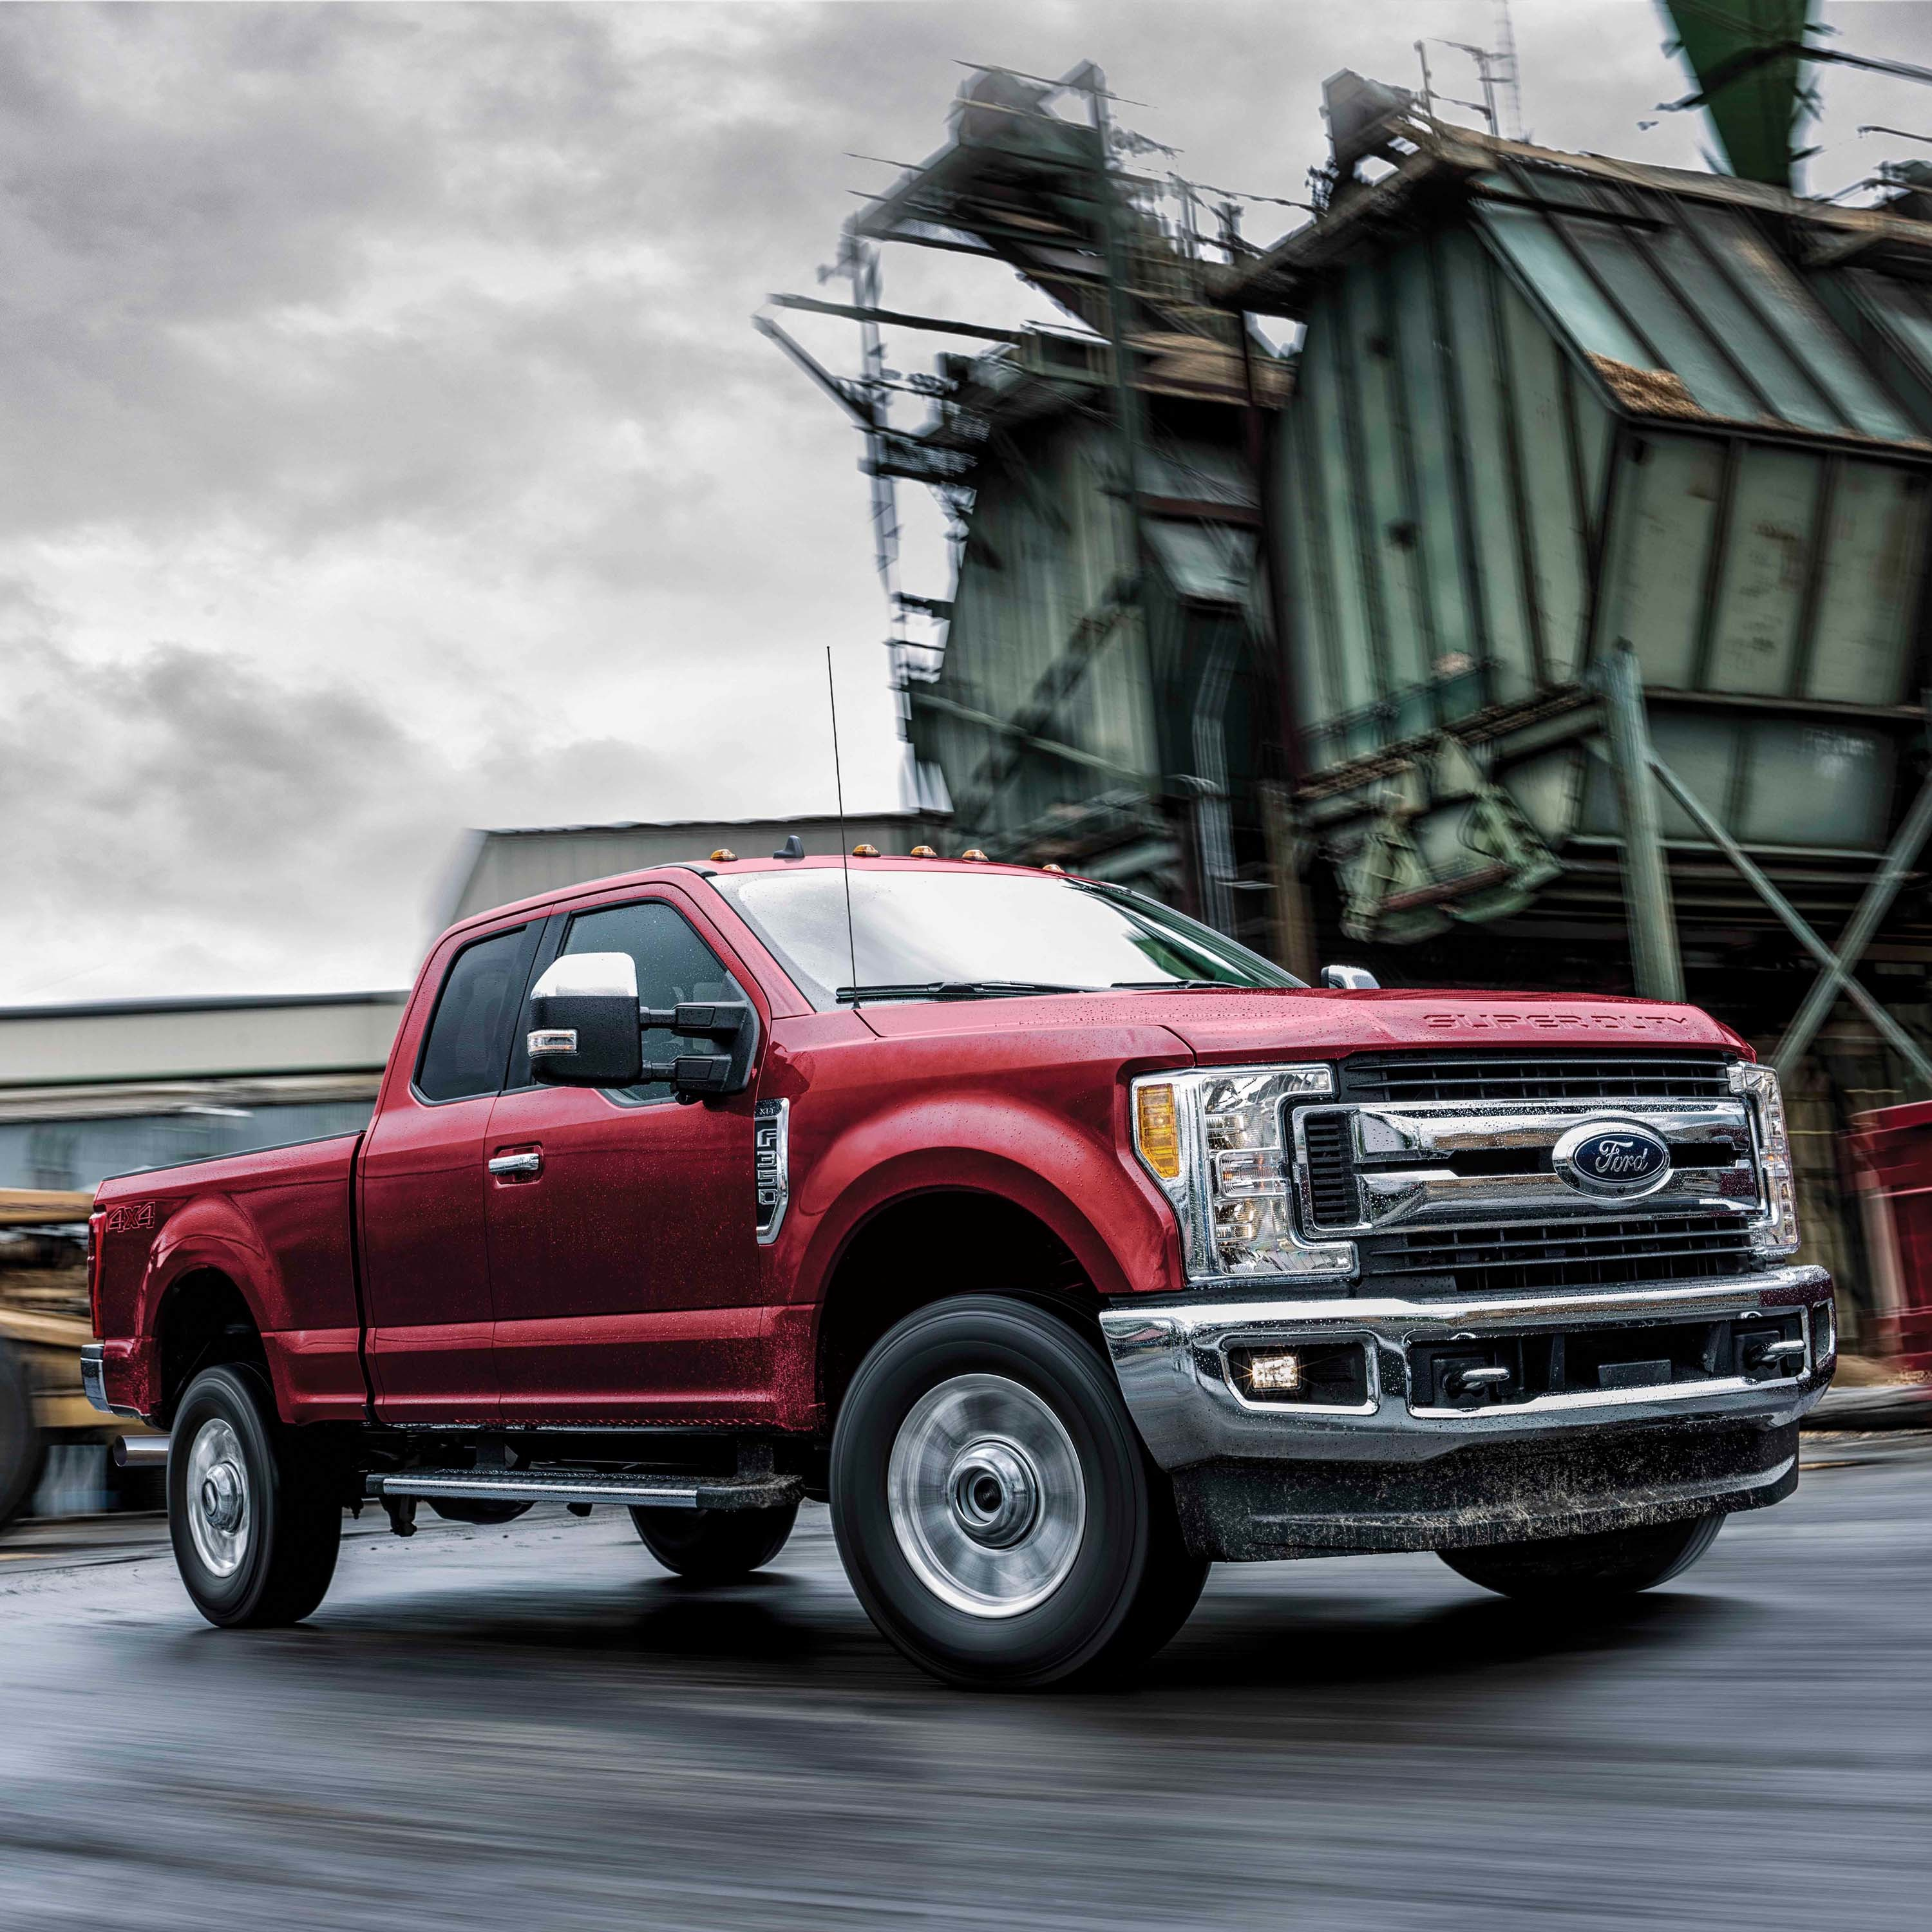 2019 Ford Commercial Super Duty Your Local Ford Dealer Near Me Joe Cotton Ford